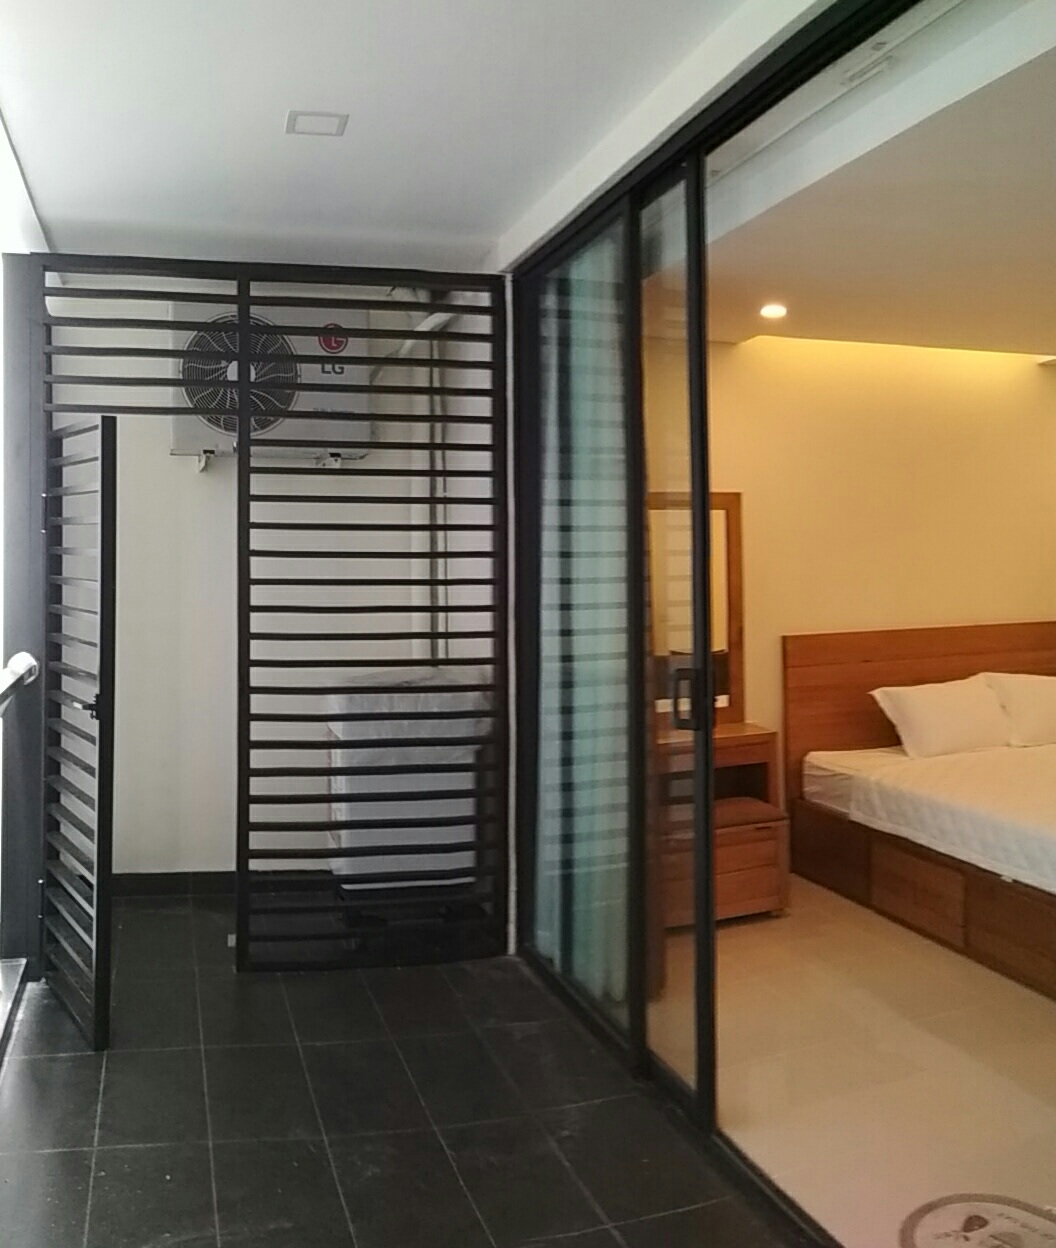 For Rent Efficiency: Studio Apartment For Rent In Maple ID A449